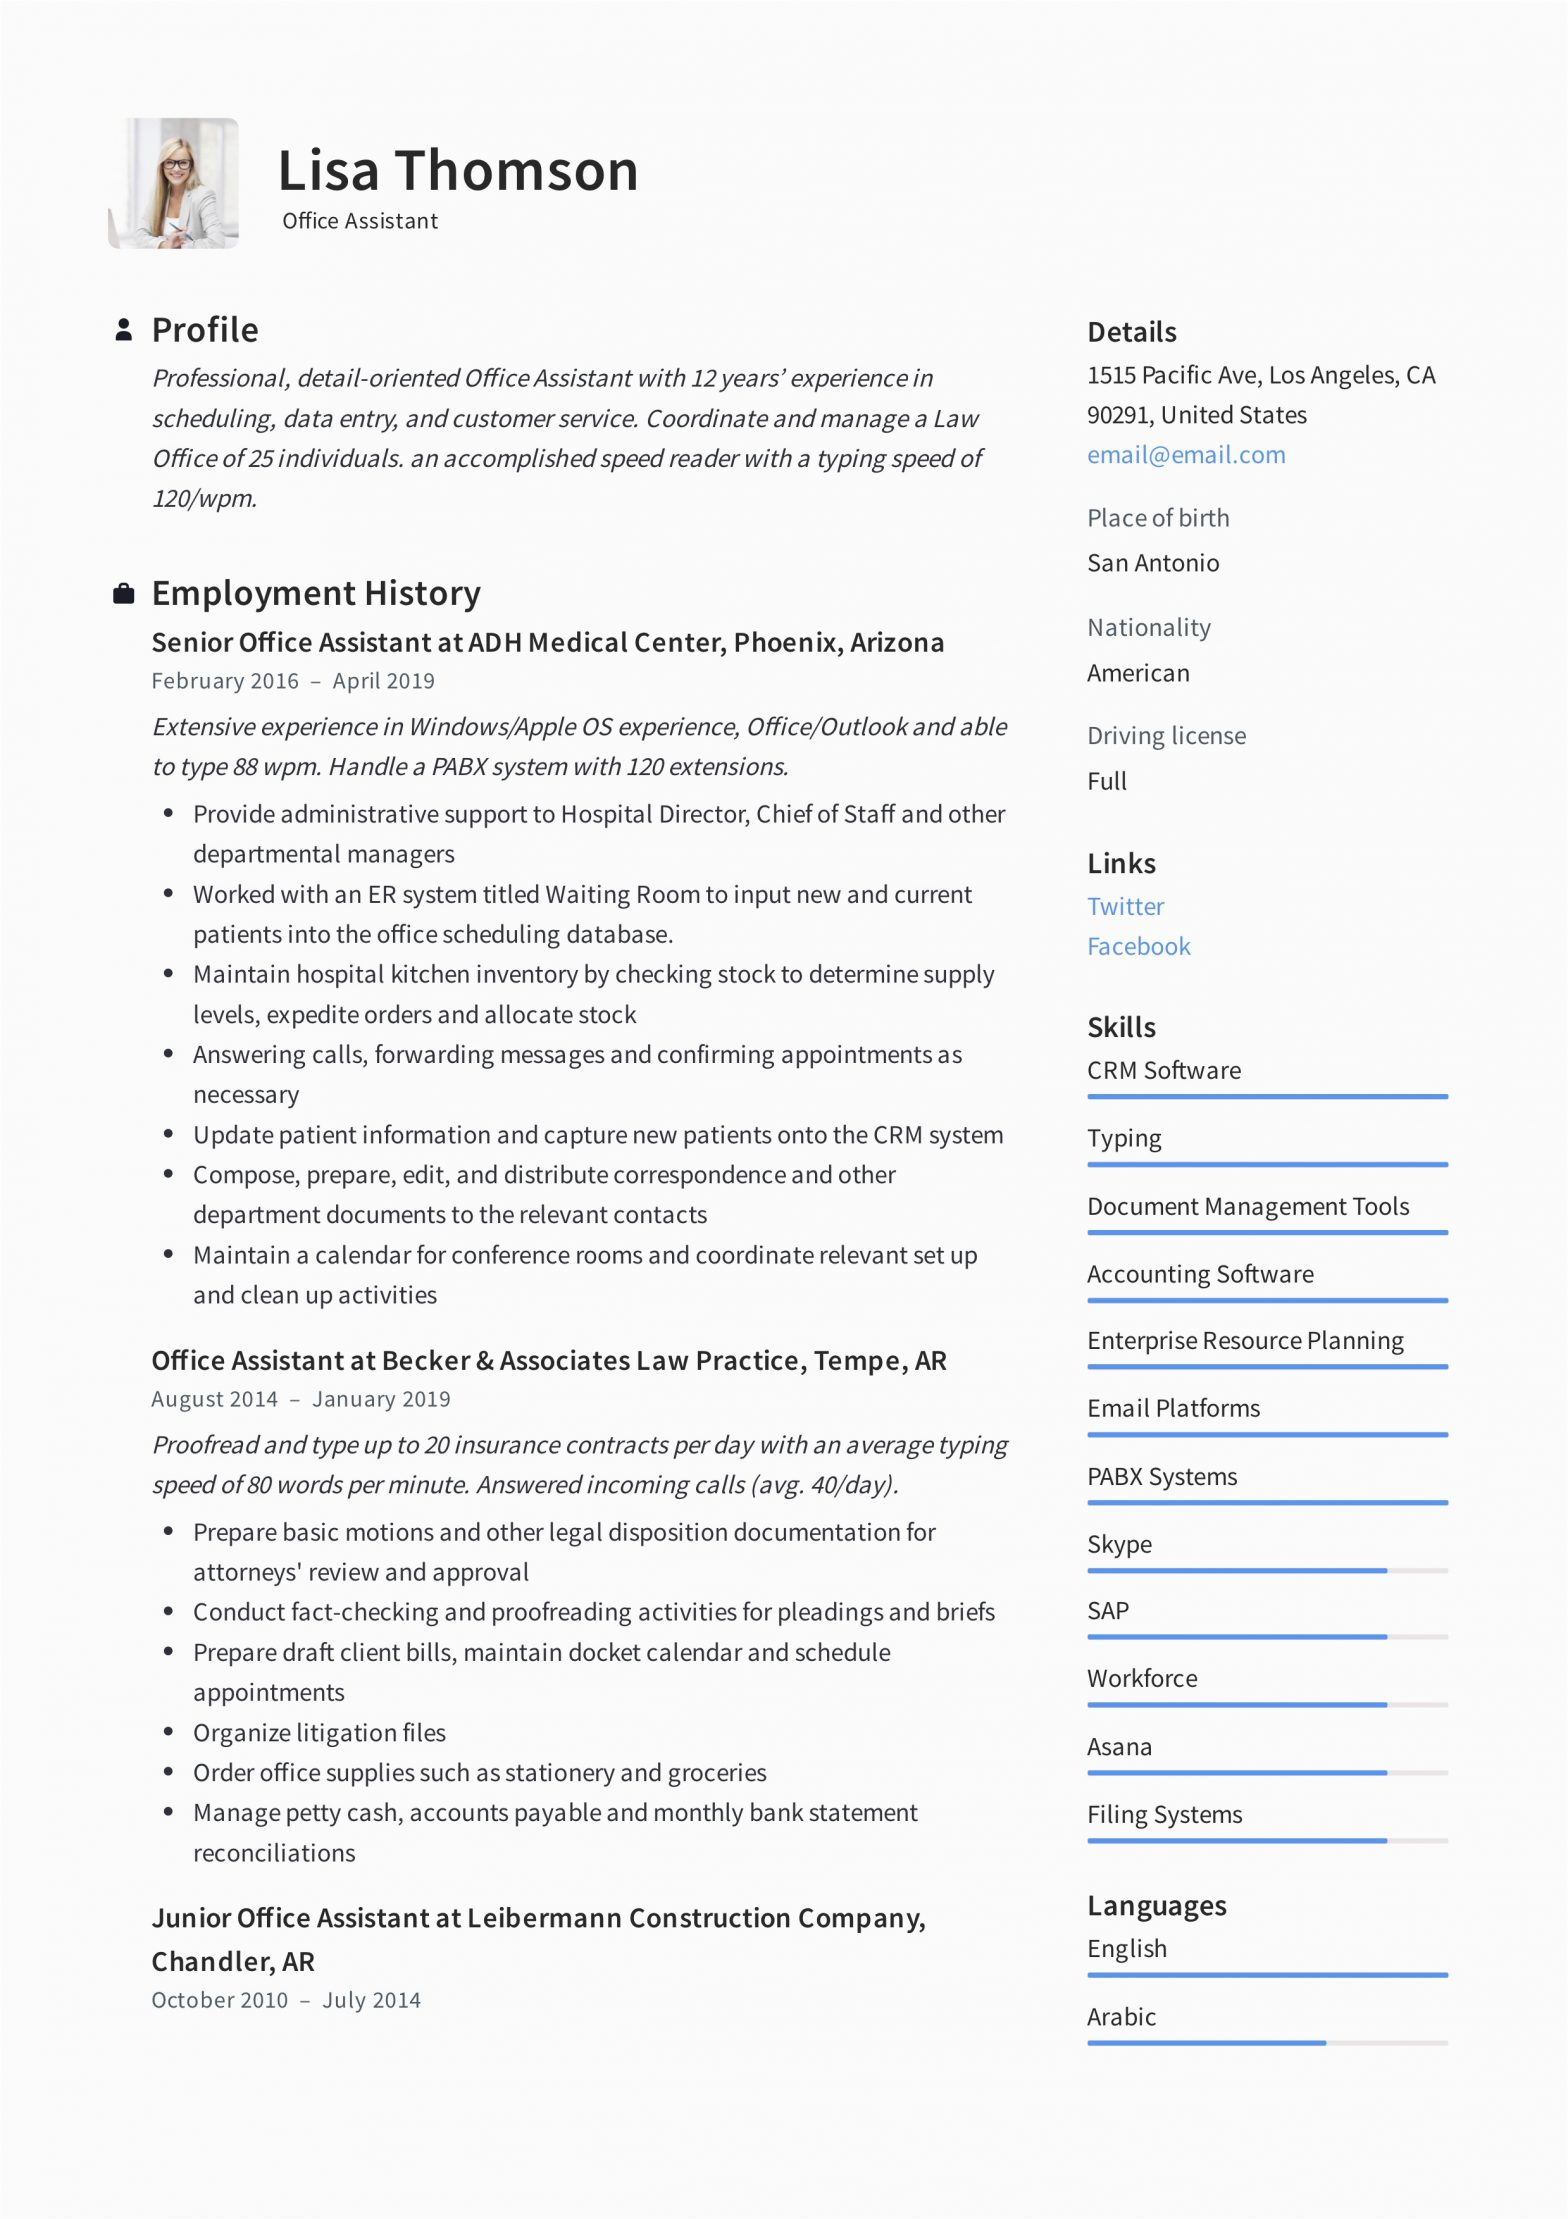 Resume Samples for Office assistant Job Fice assistant Resume Writing Guide